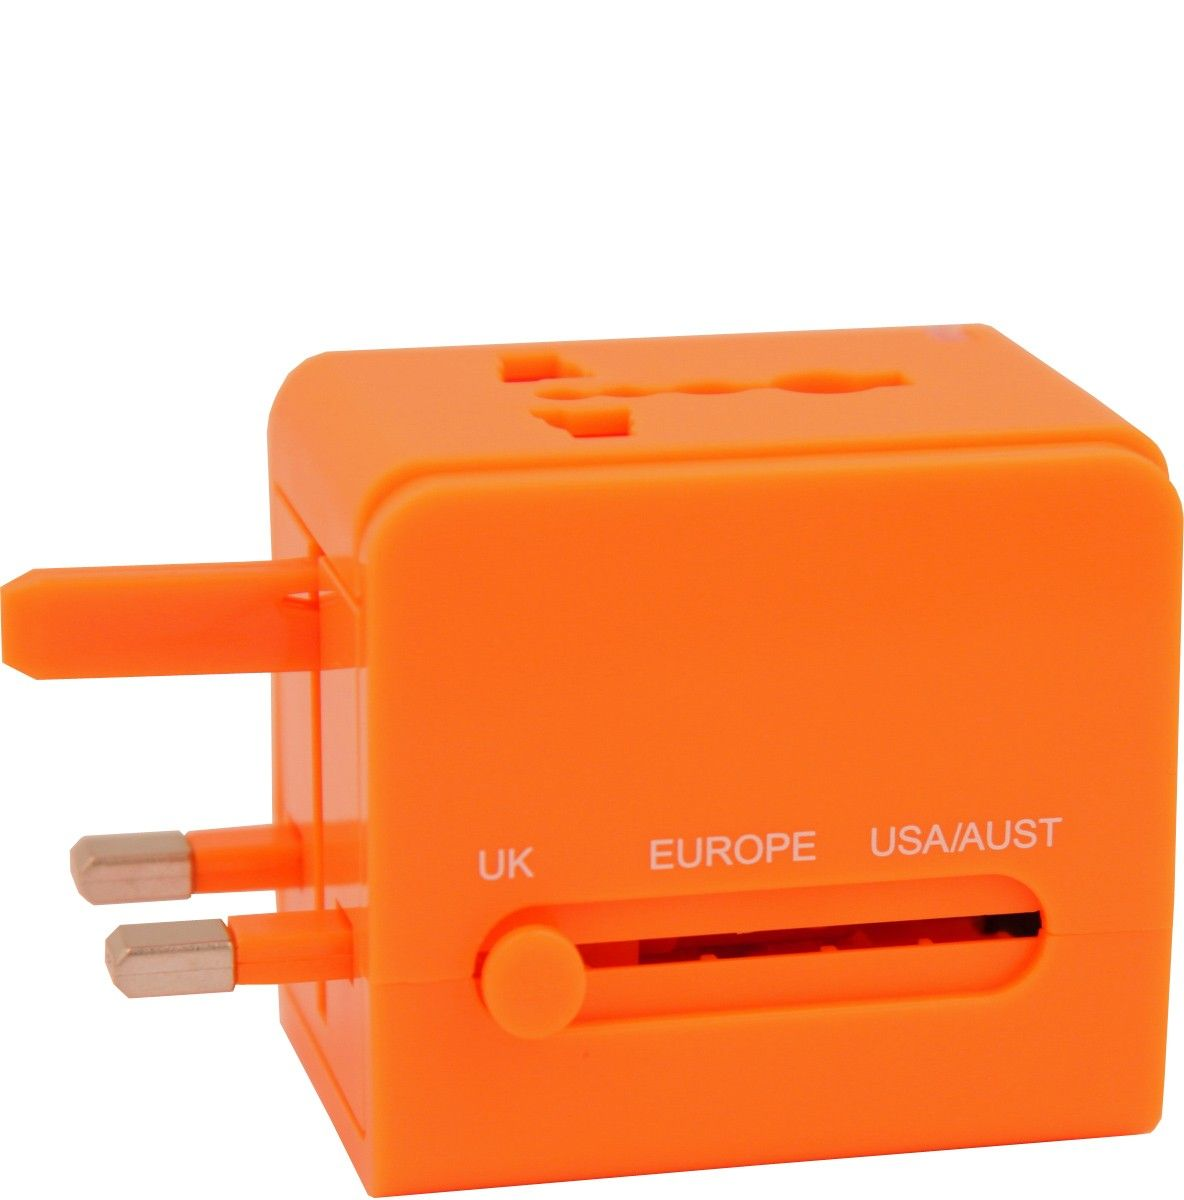 Flight 001 | Universal Adapter Orange - Adapters - All Products